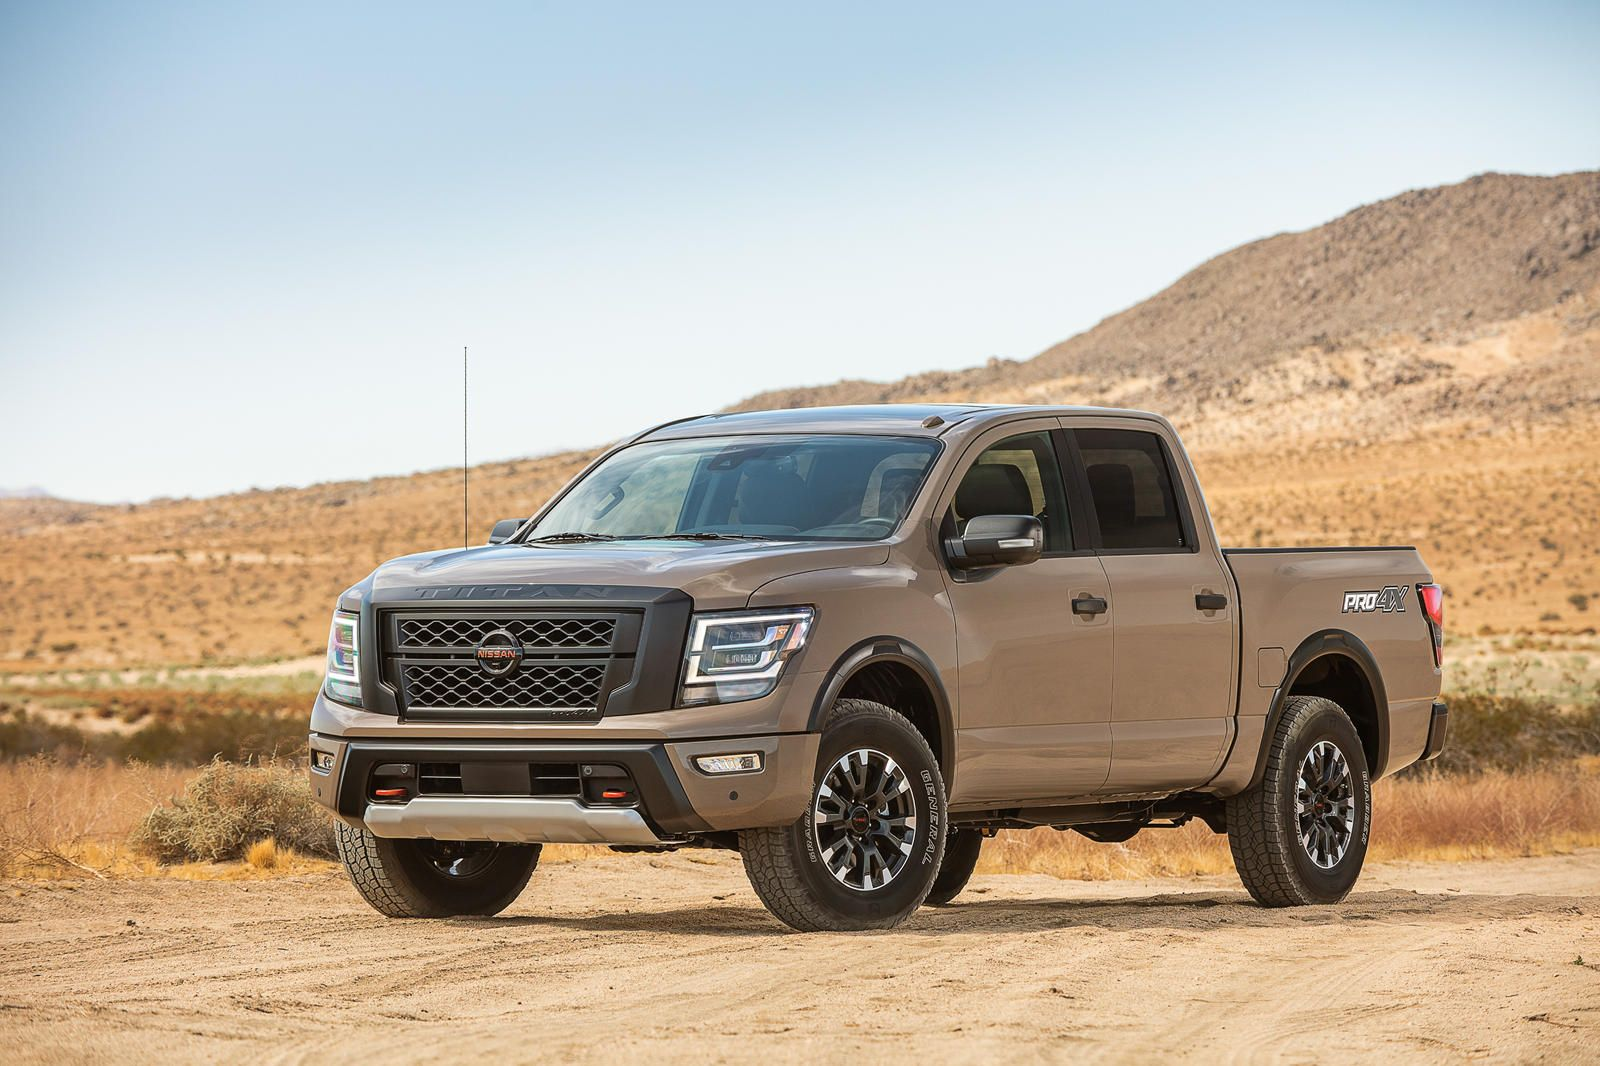 2020 Nissan Titan First Look Review Taking On Detroit Should Ford Chevy And Ram Be Concerned By Nissan S New Truck Nissan Titan Nissan Nissan Titan Pro 4x